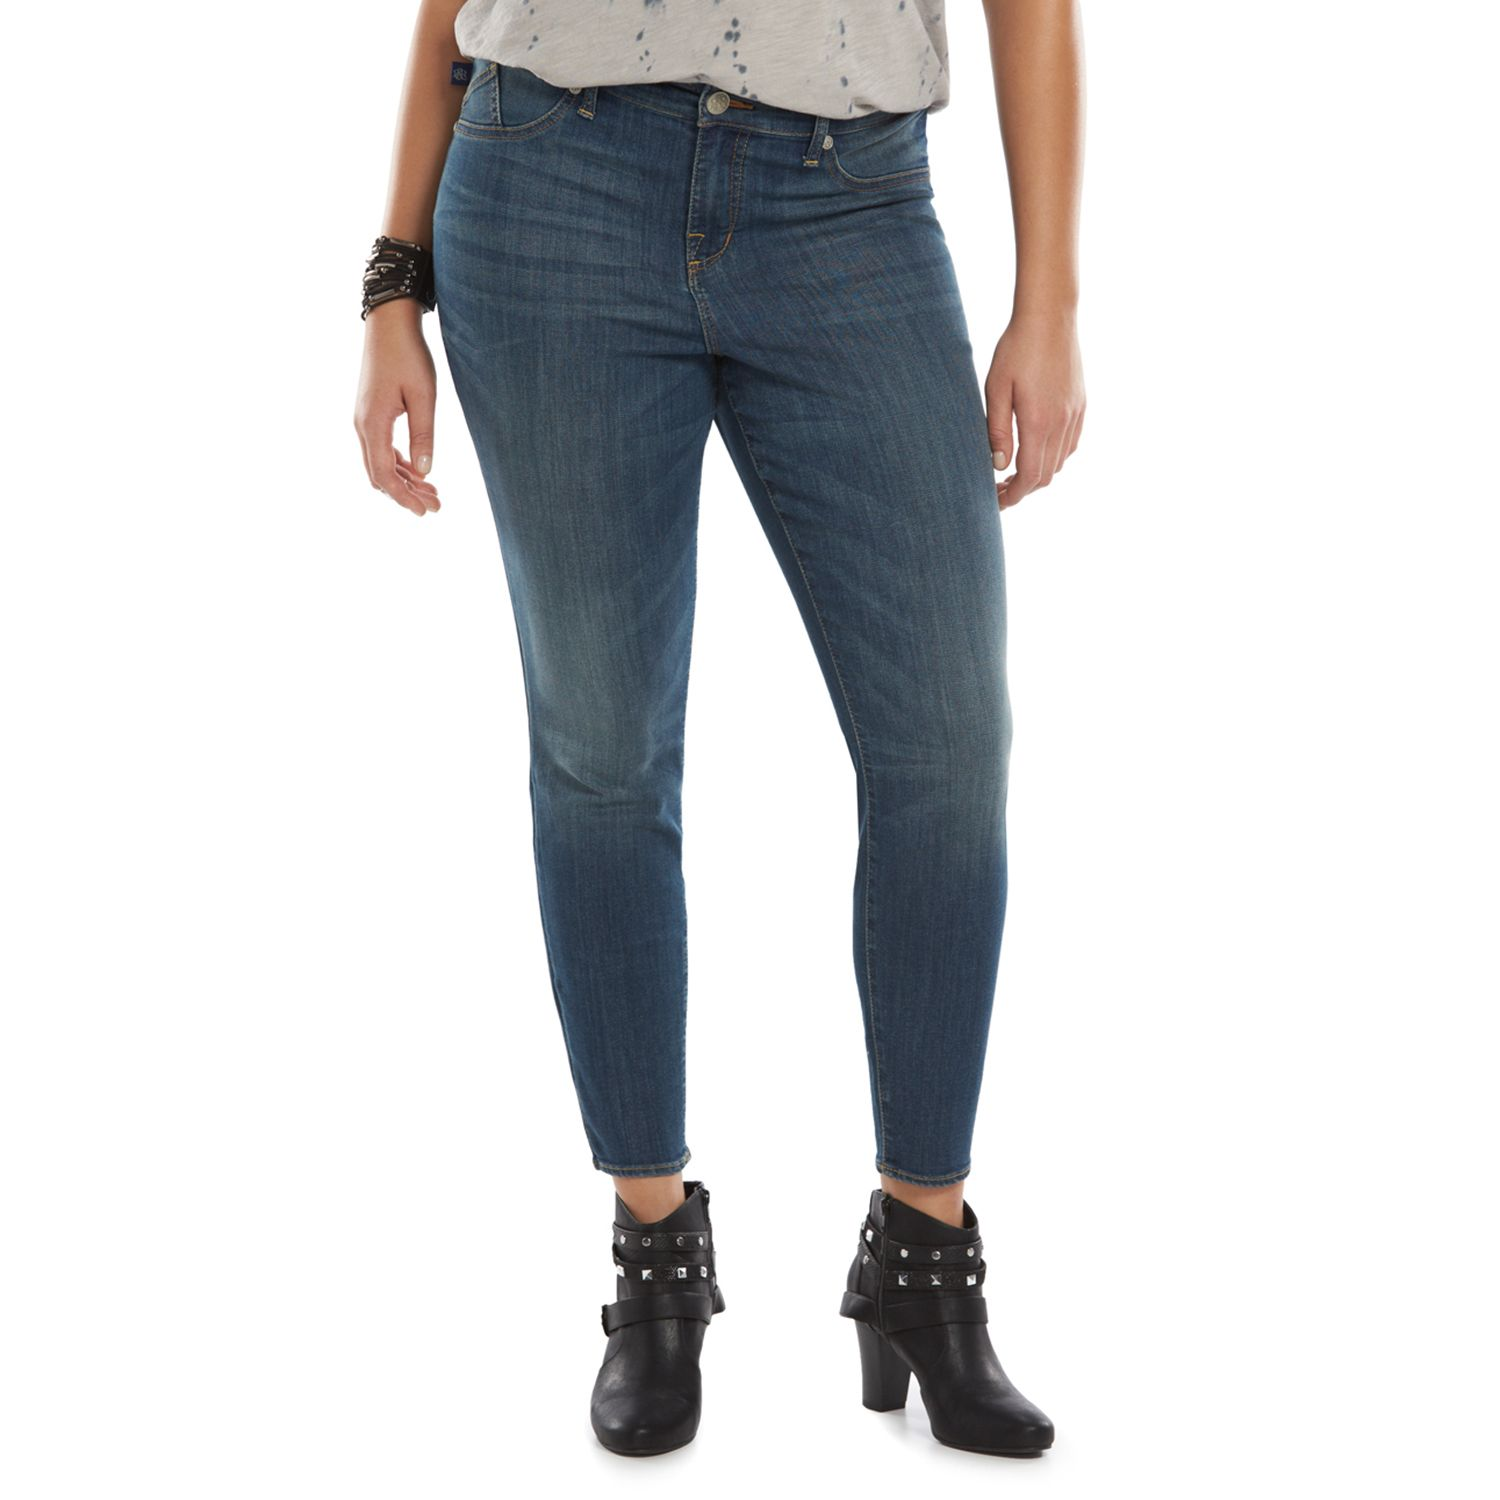 Plus Size Rock & Republic? High-Waist Jeggings